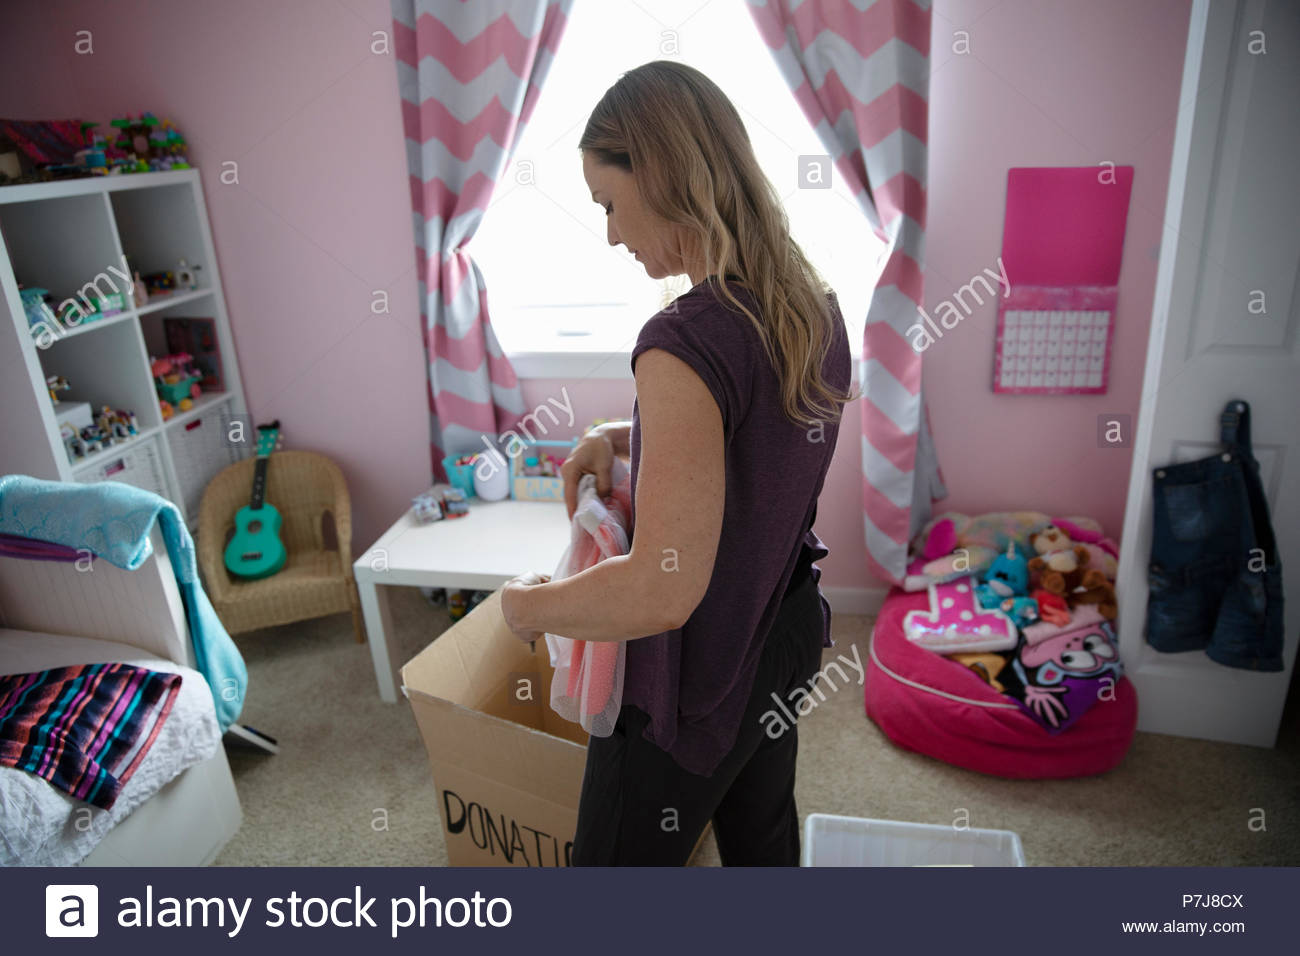 Mother organizing daughters bedroom, donating clothes - Stock Image